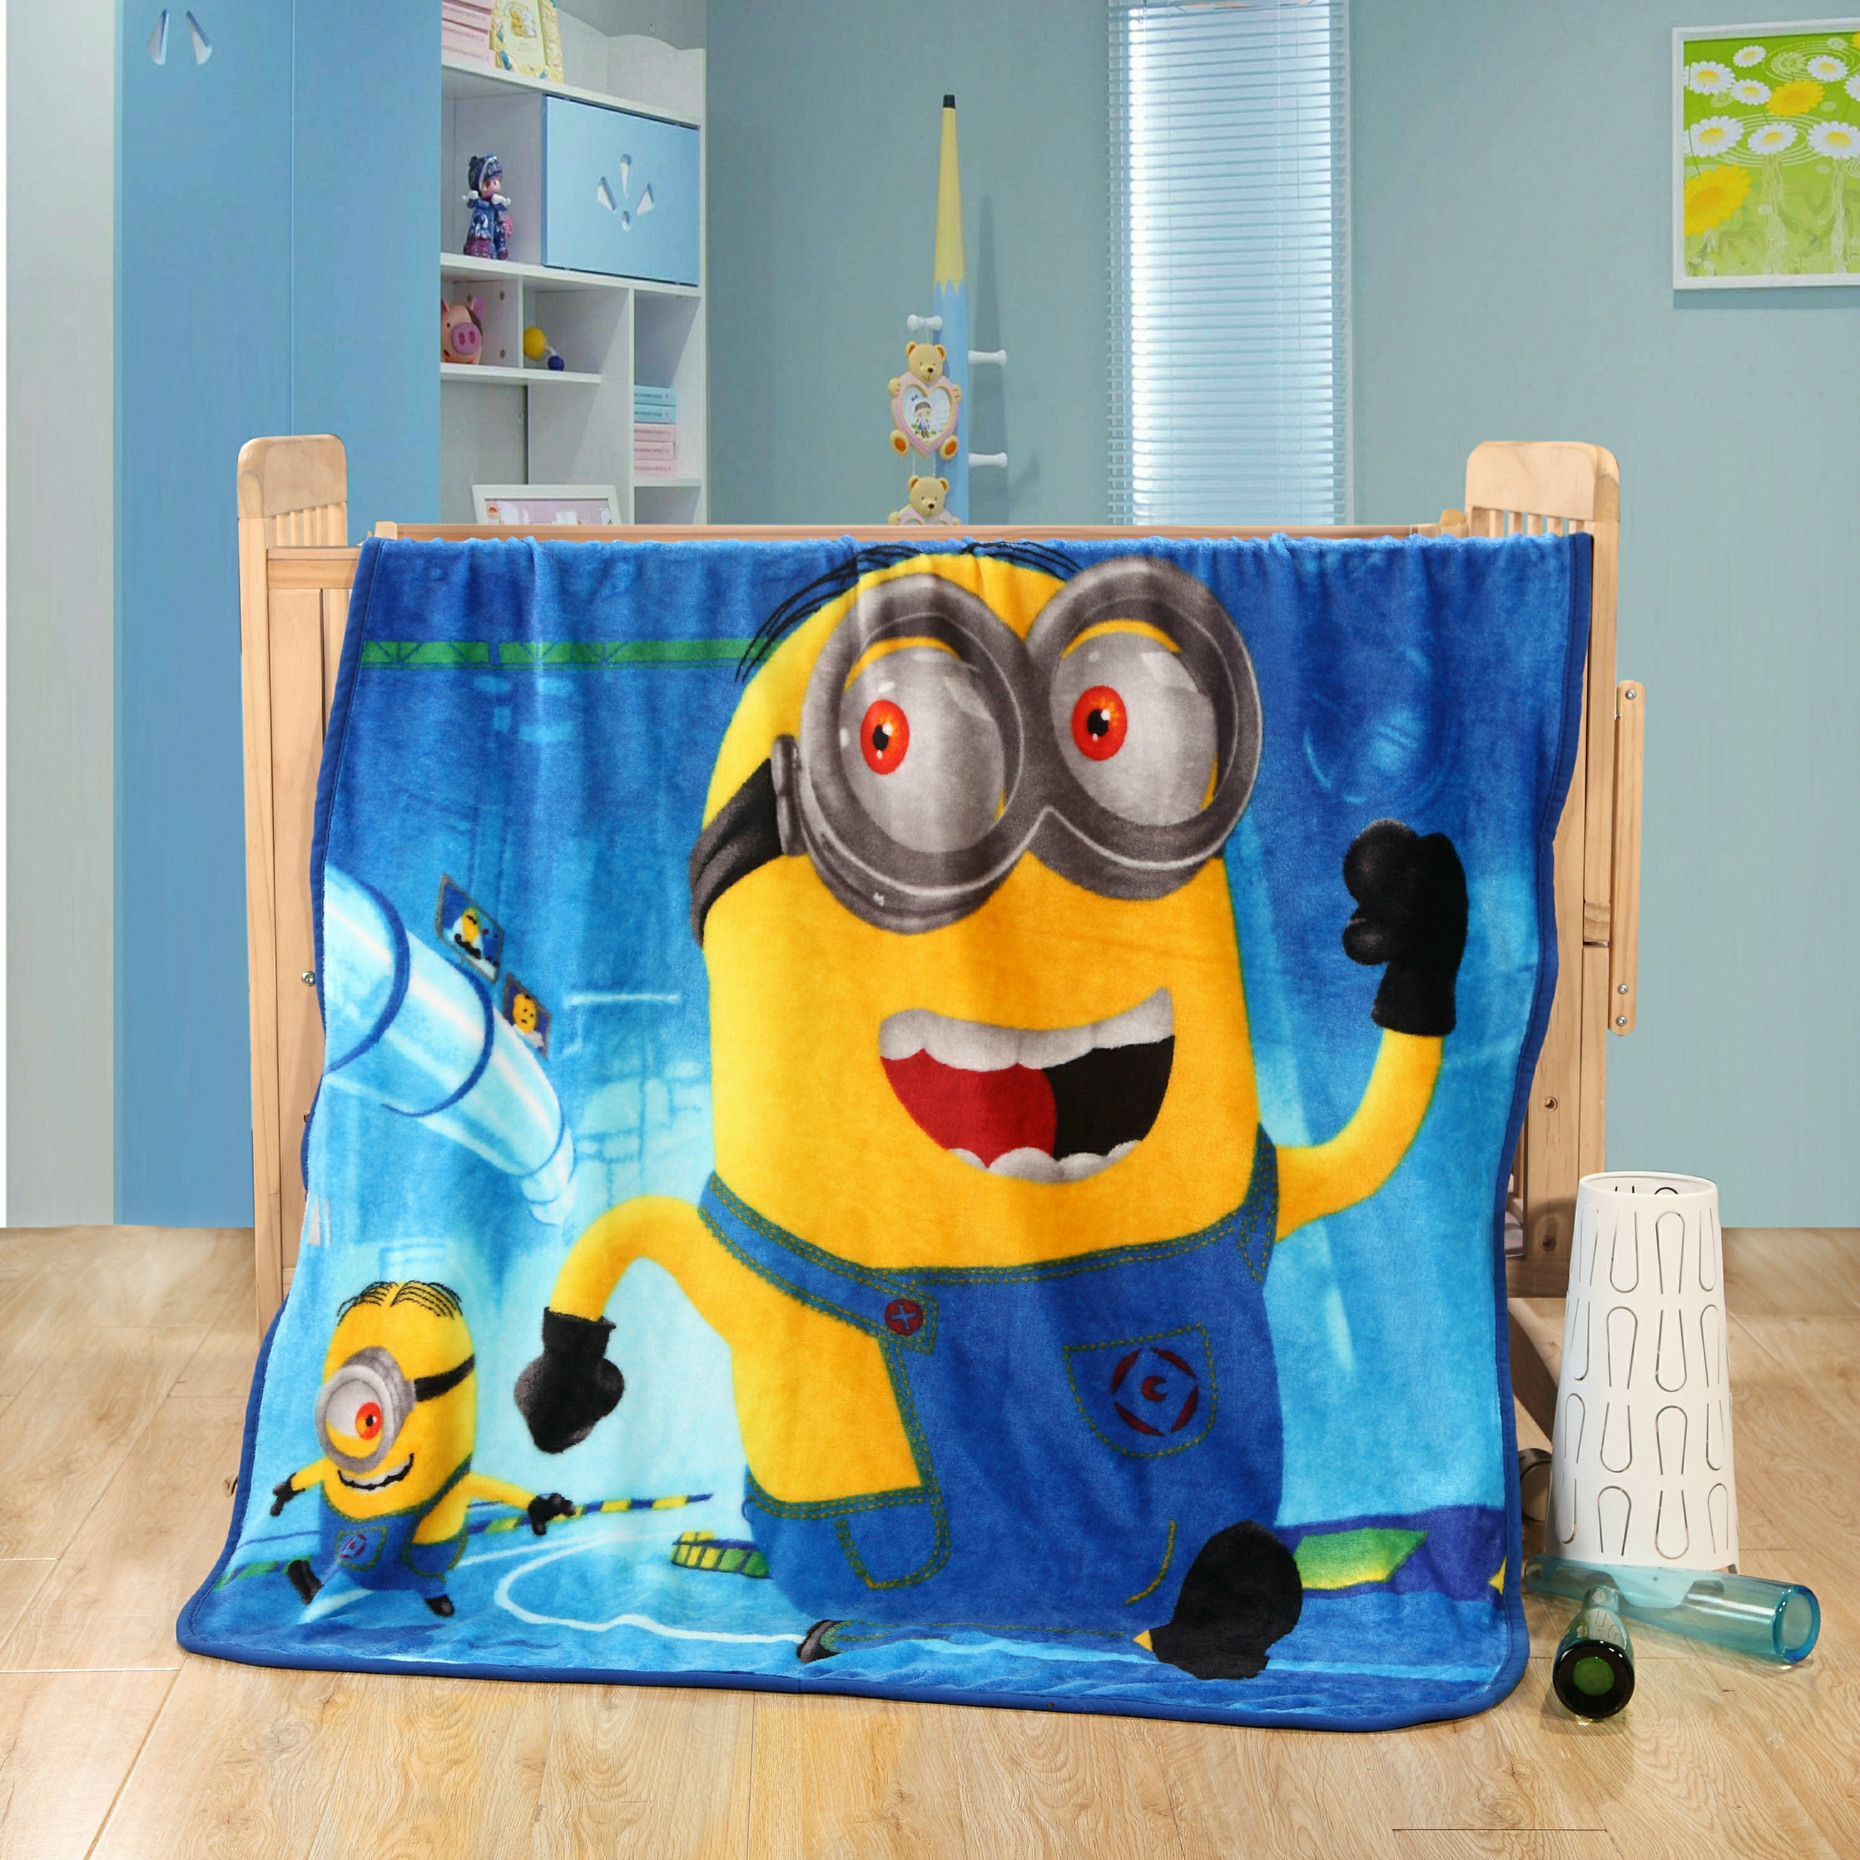 line Buy Wholesale 3d blanket from China 3d blanket Wholesalers